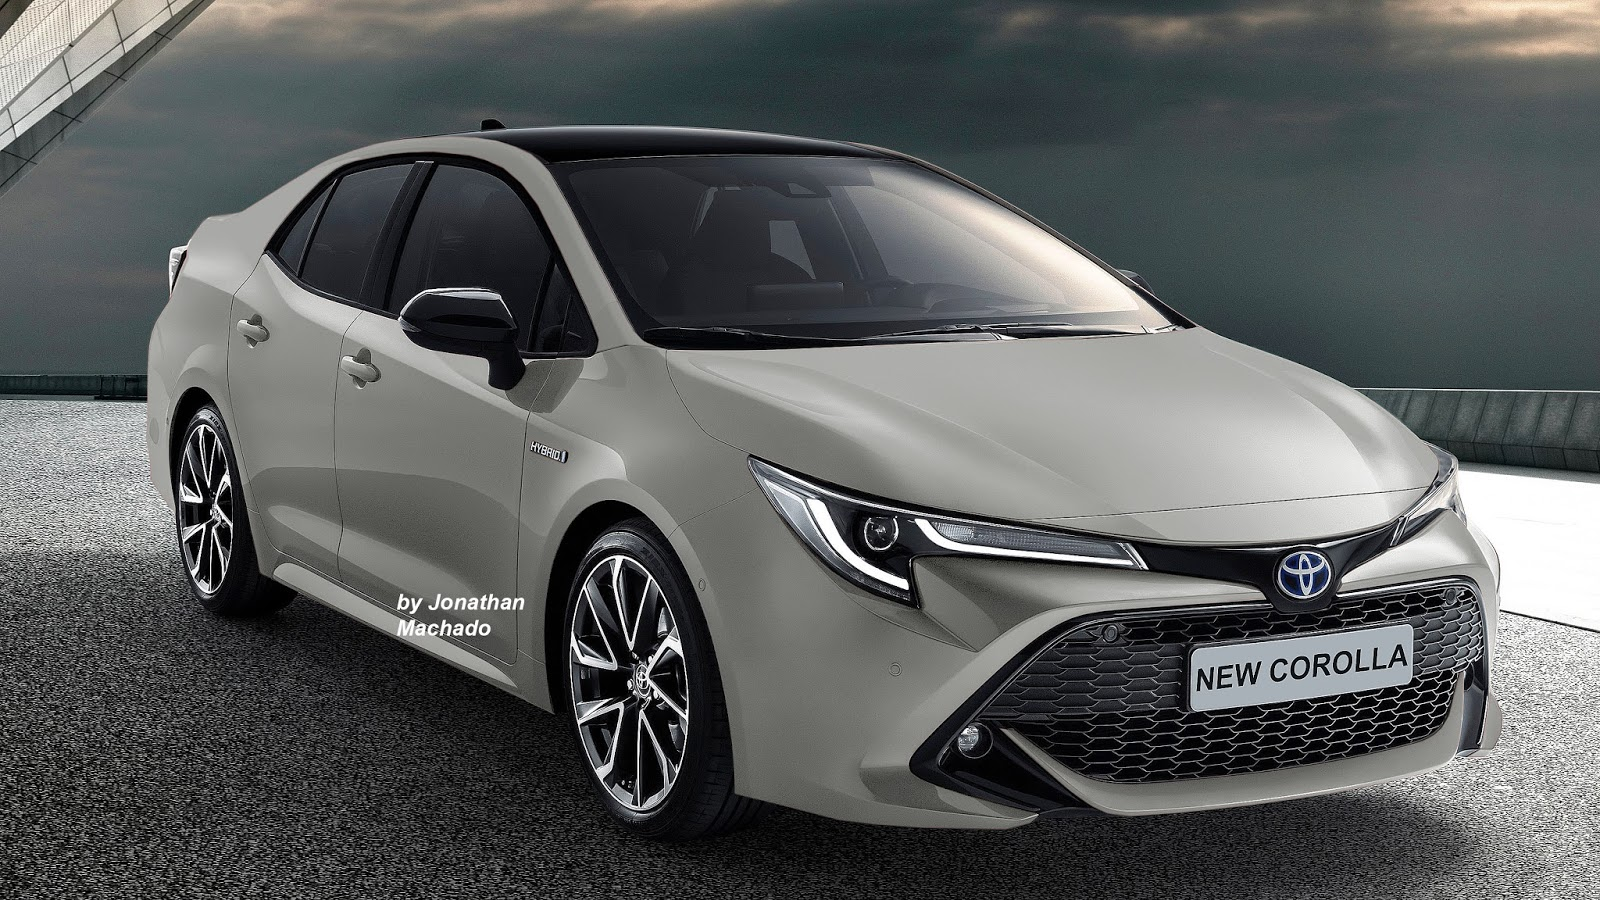 new corolla altis launch date in india grand avanza e 2015 next gen 2019 toyota rendered multiple colours the sedan may debut by end of 2018 or early